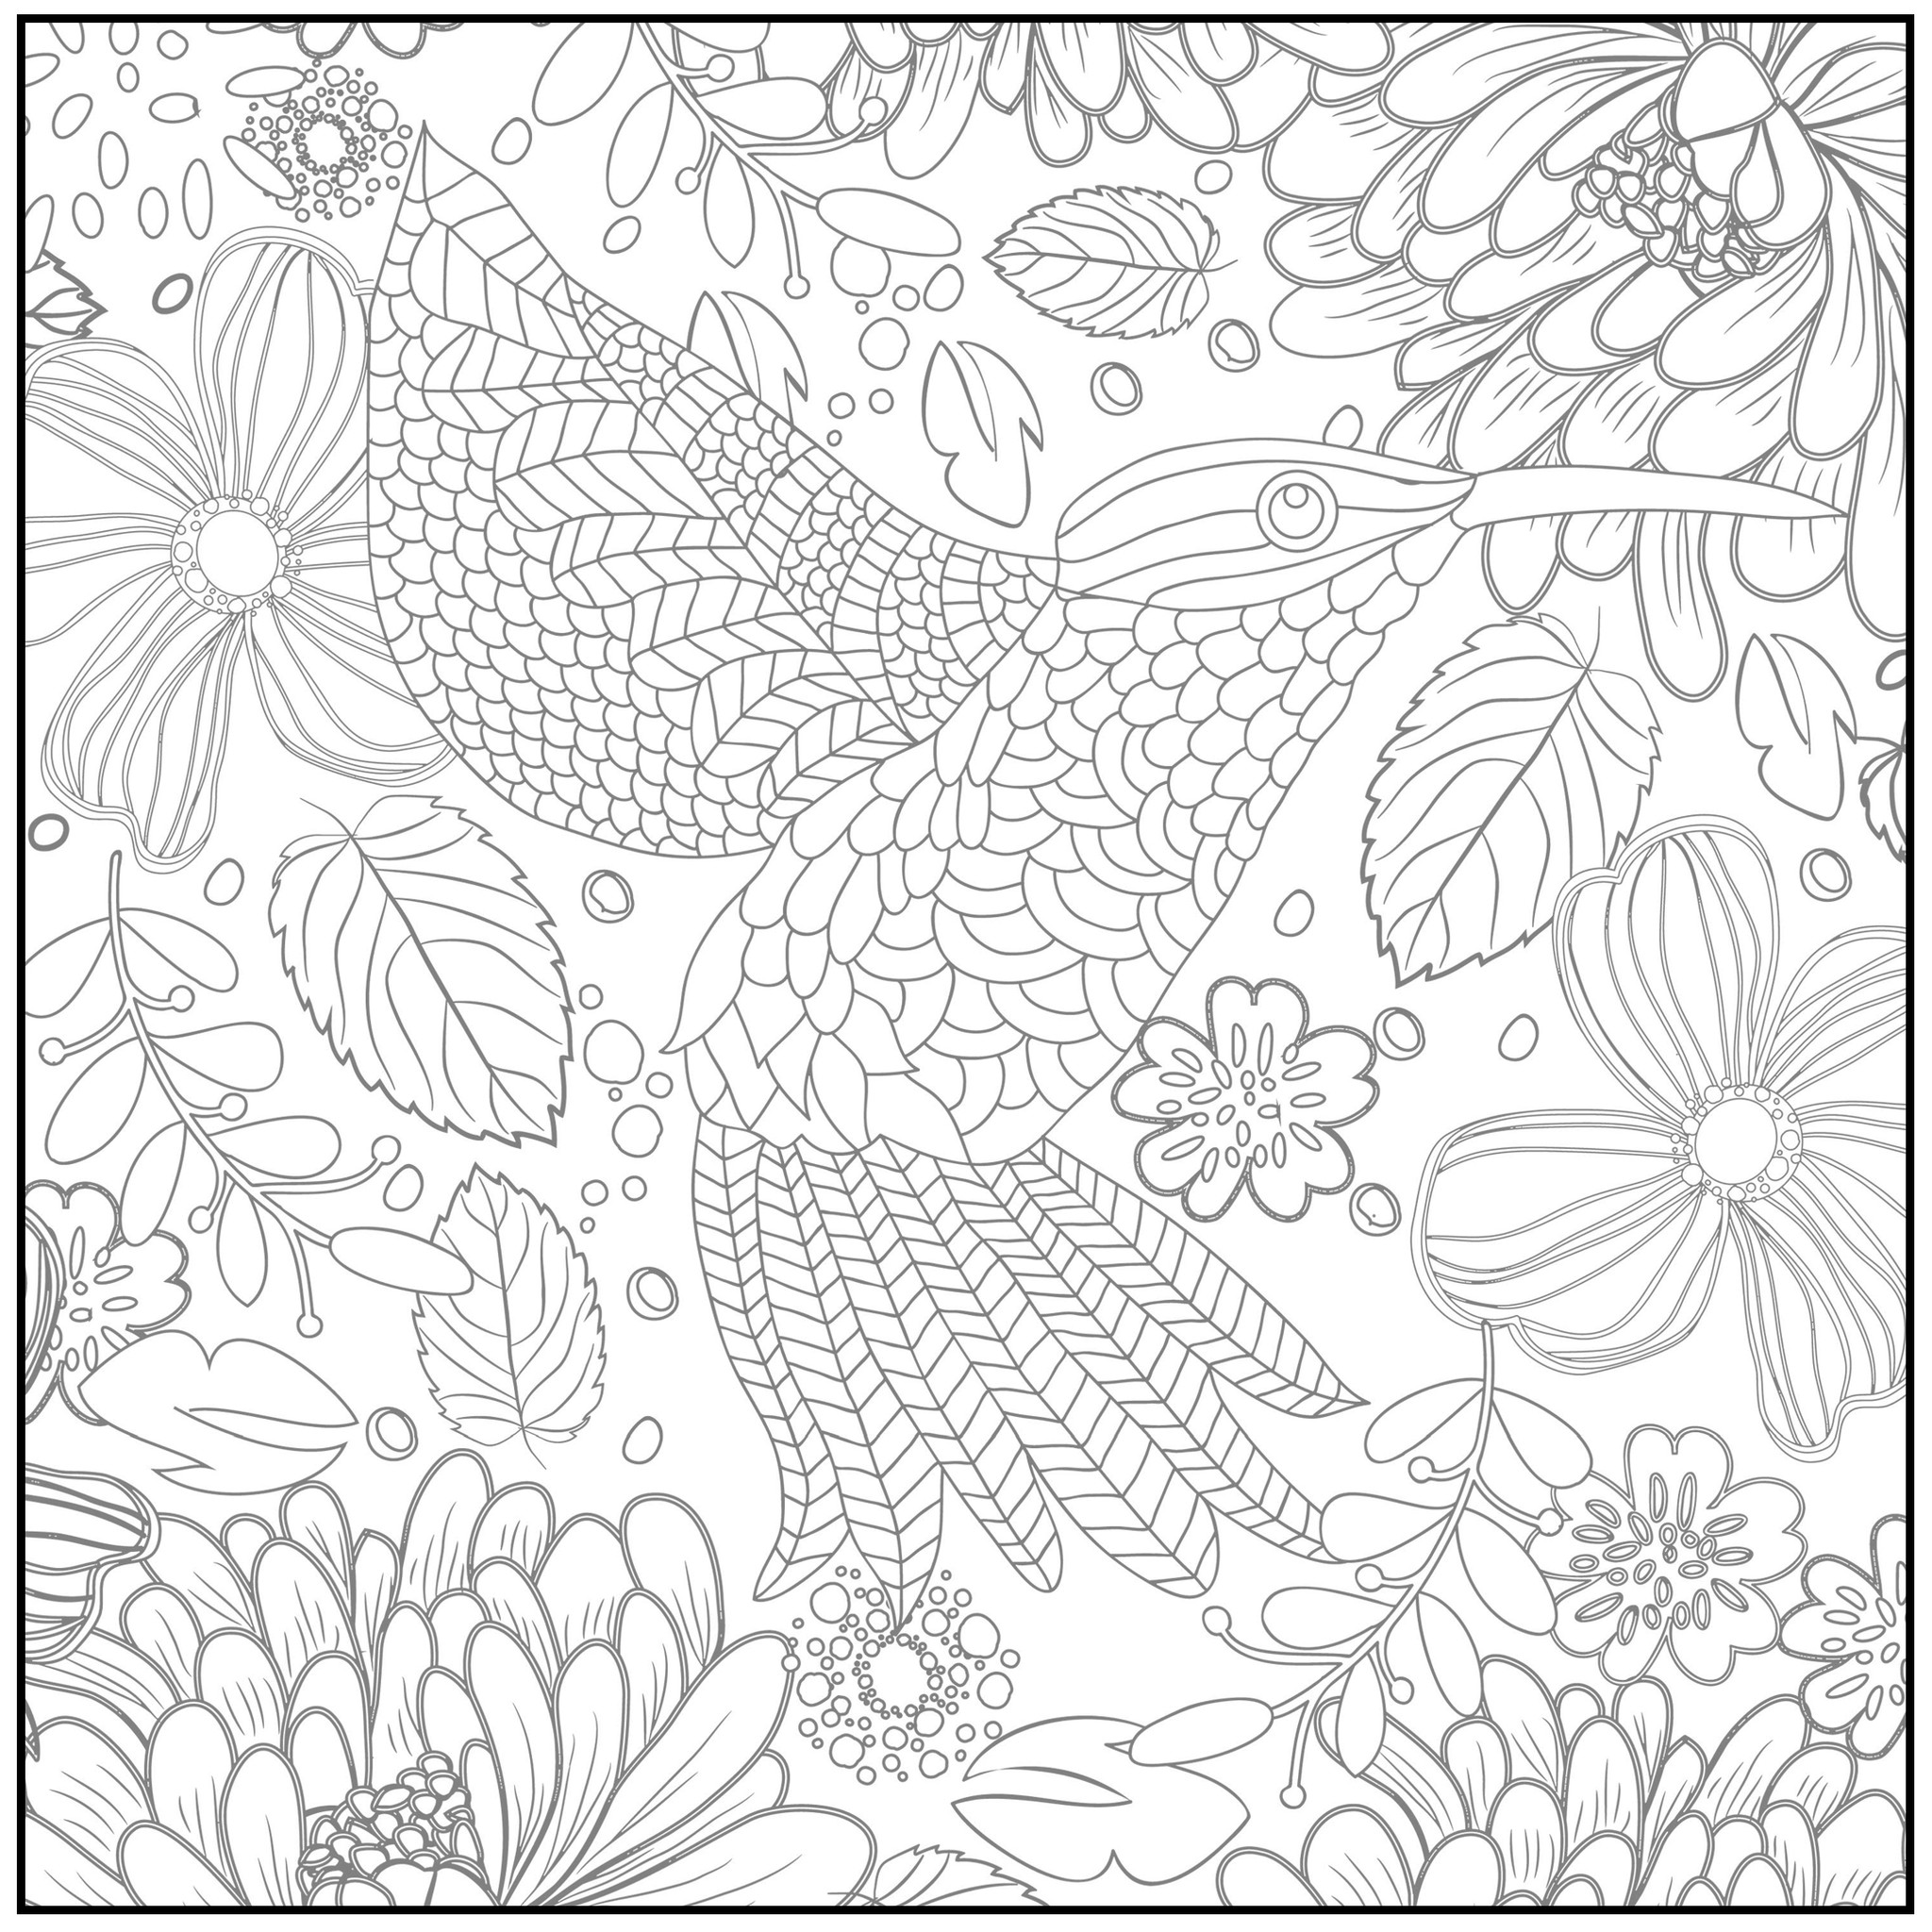 blank drawing book at getdrawings free for personal use blank Blue Blank Page 2048x2048 color with music spring serenade adult coloring book blank page